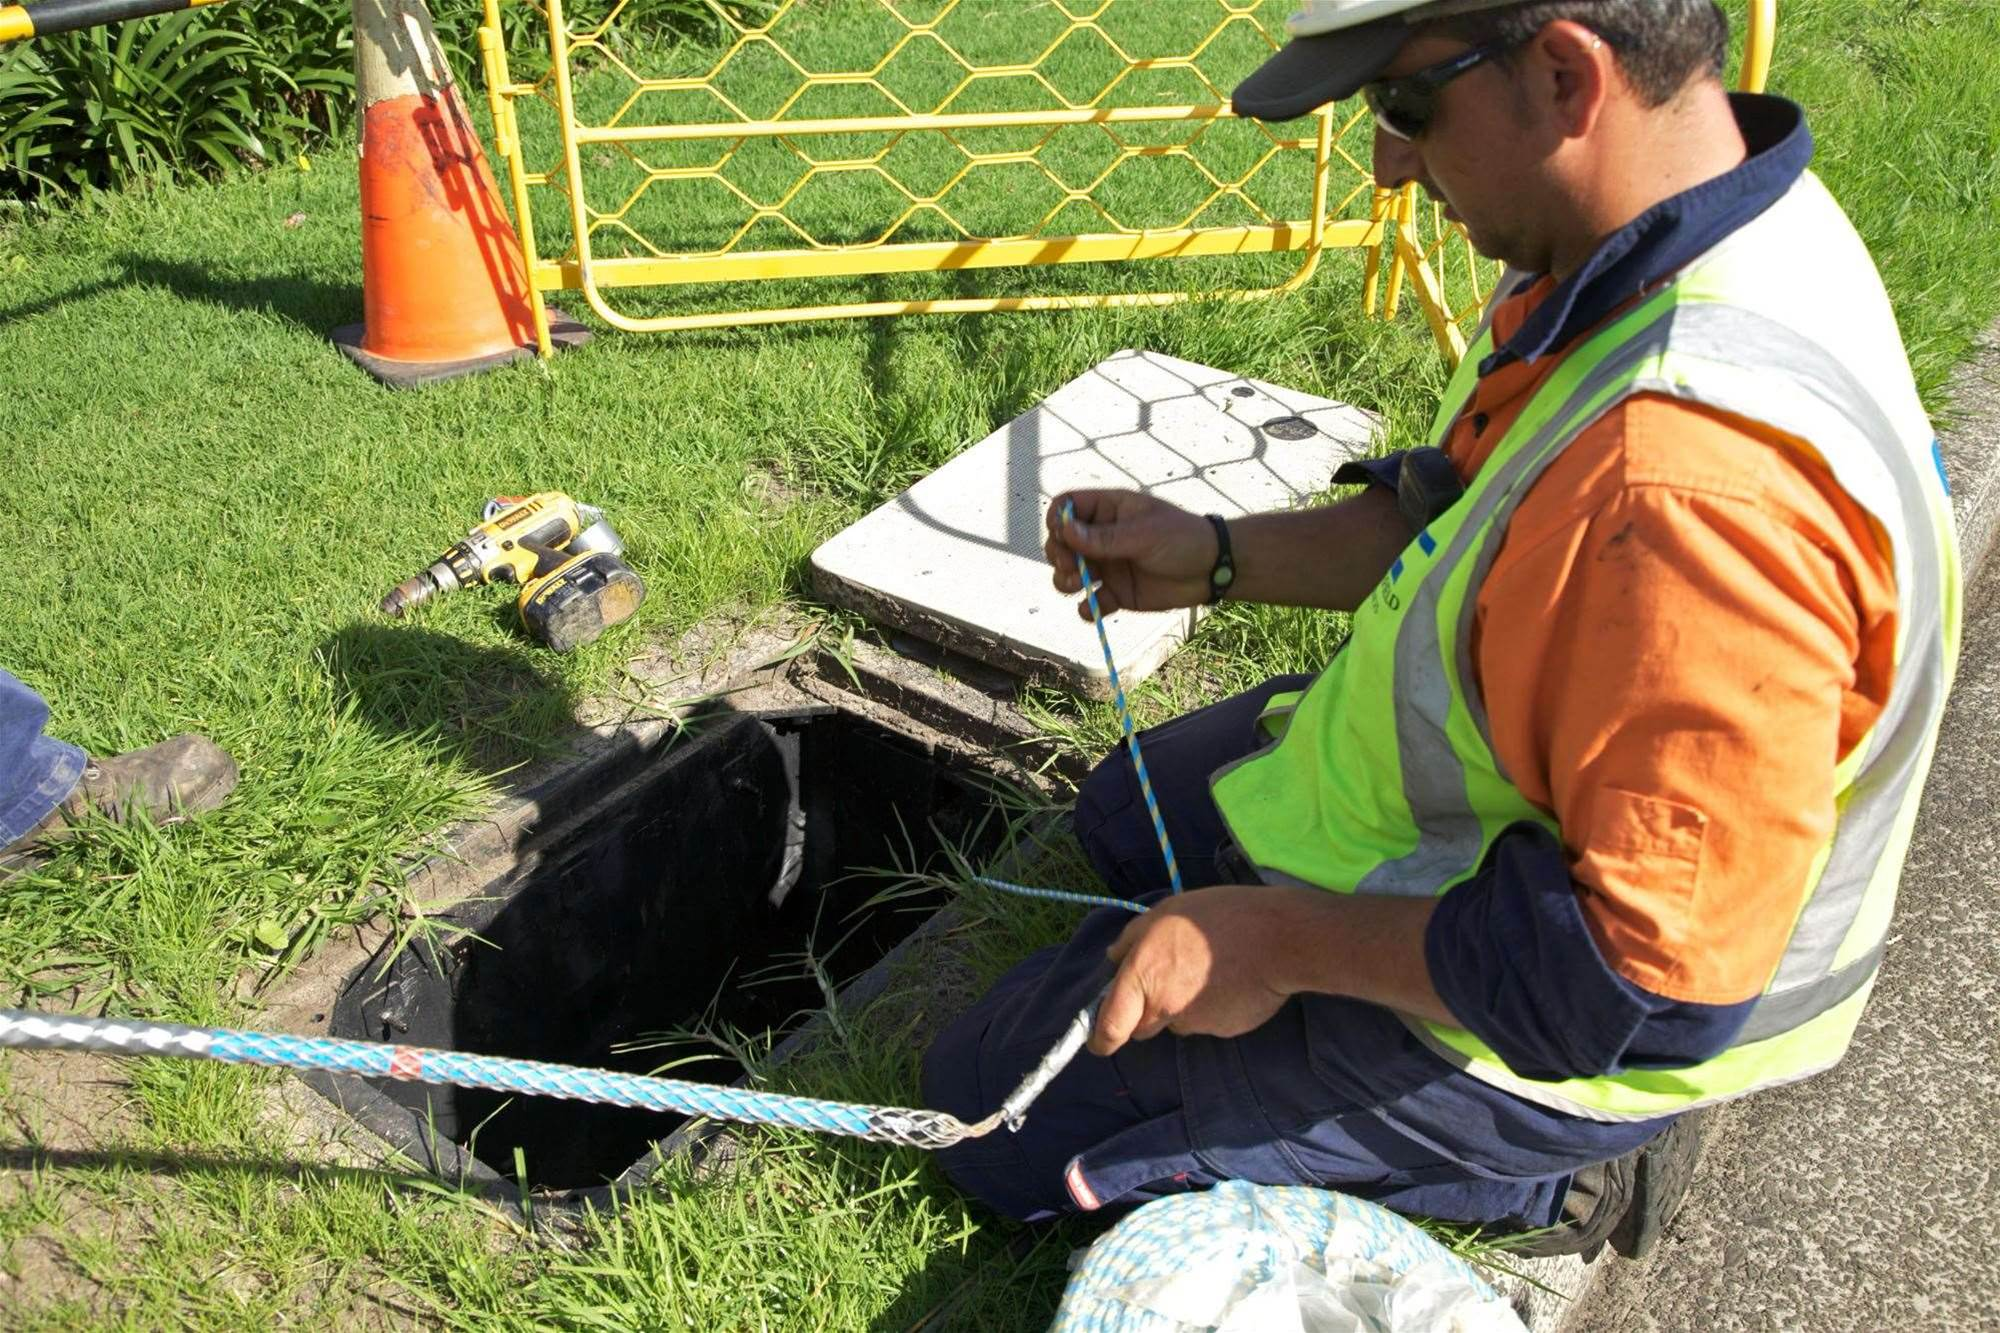 NBN on track to reach million premises milestone